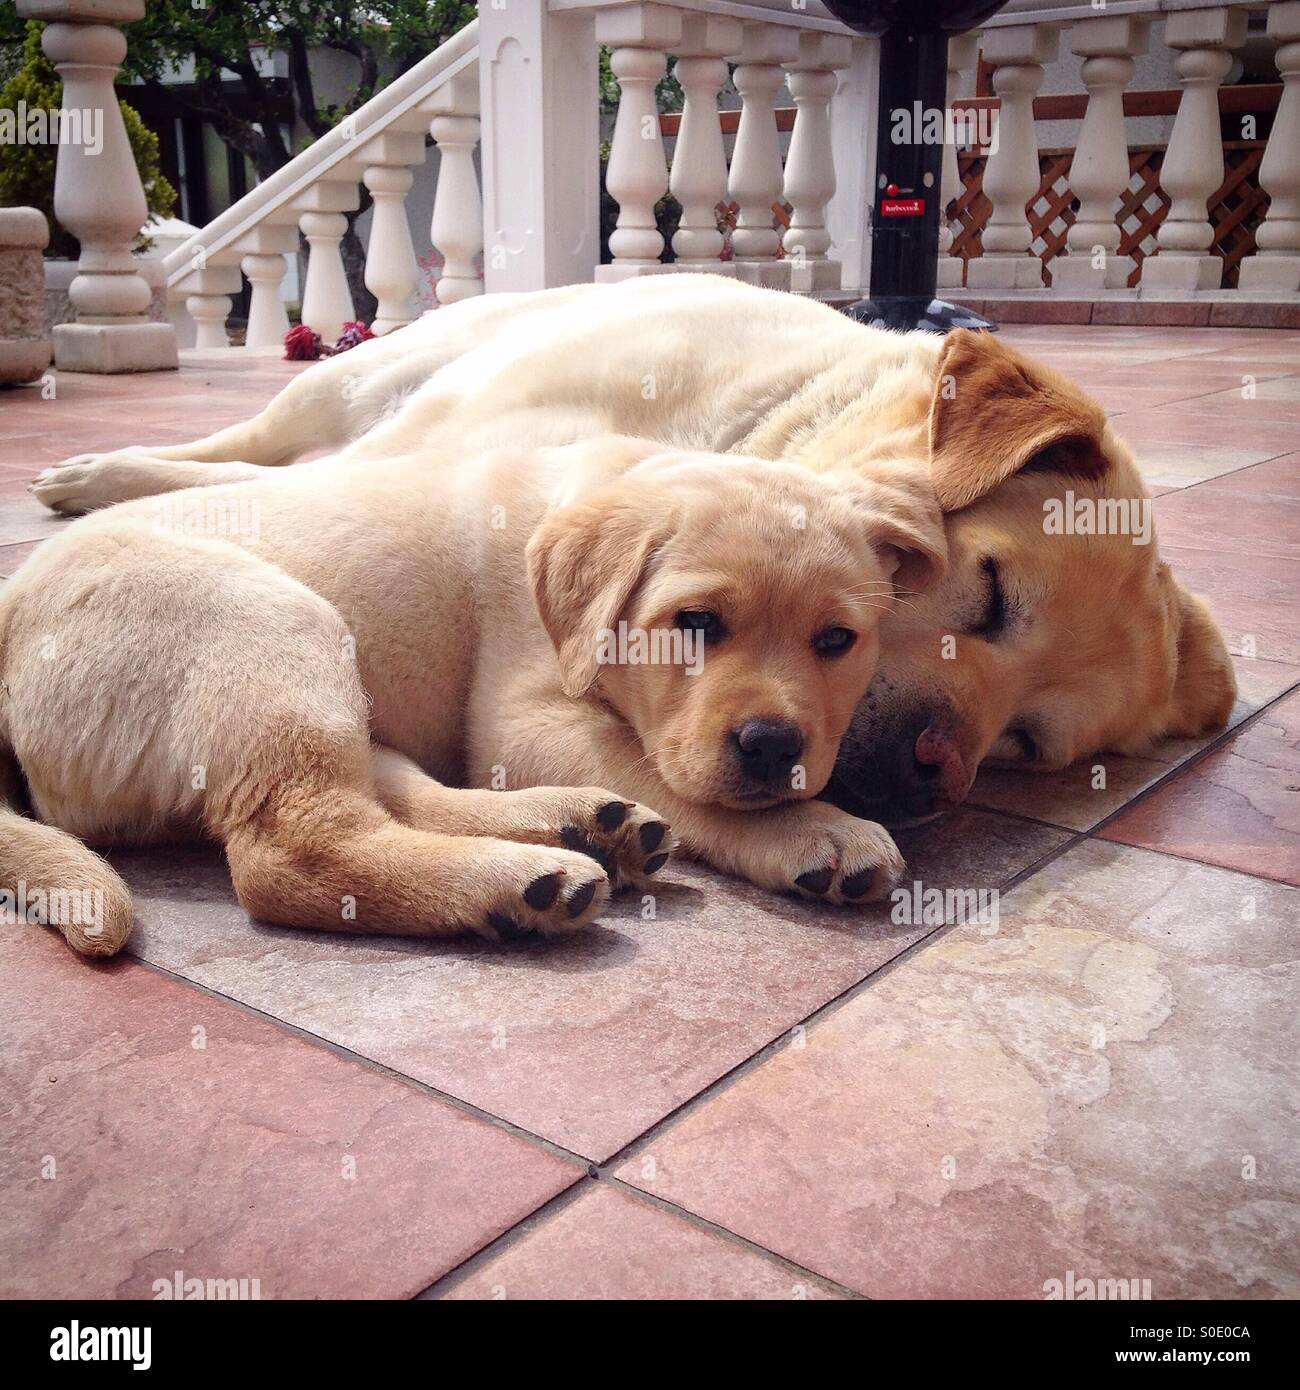 Pup love - Stock Image